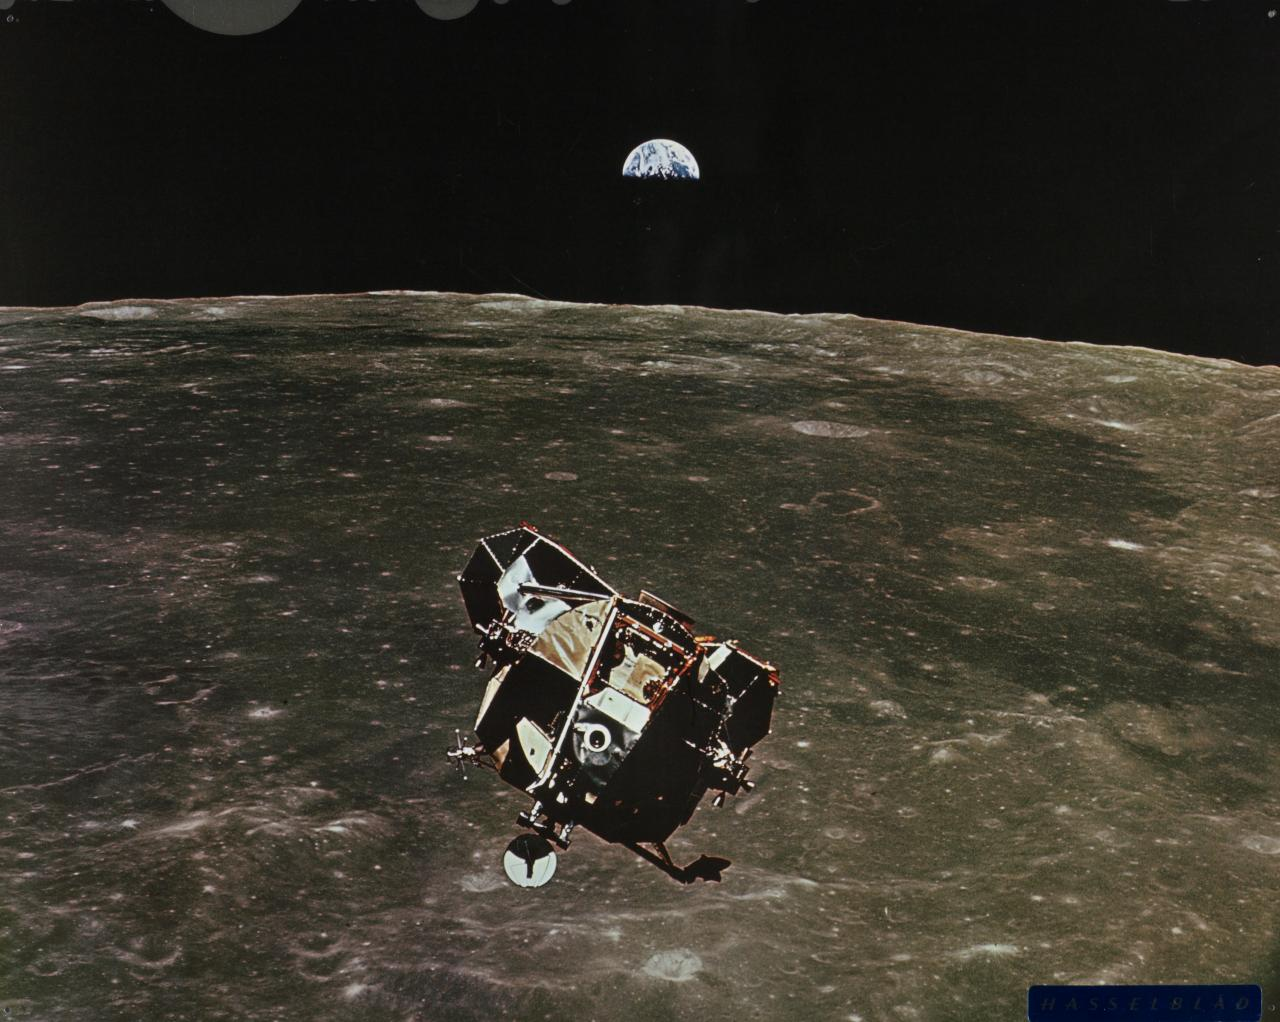 Lunar module ascending from moon earth in background